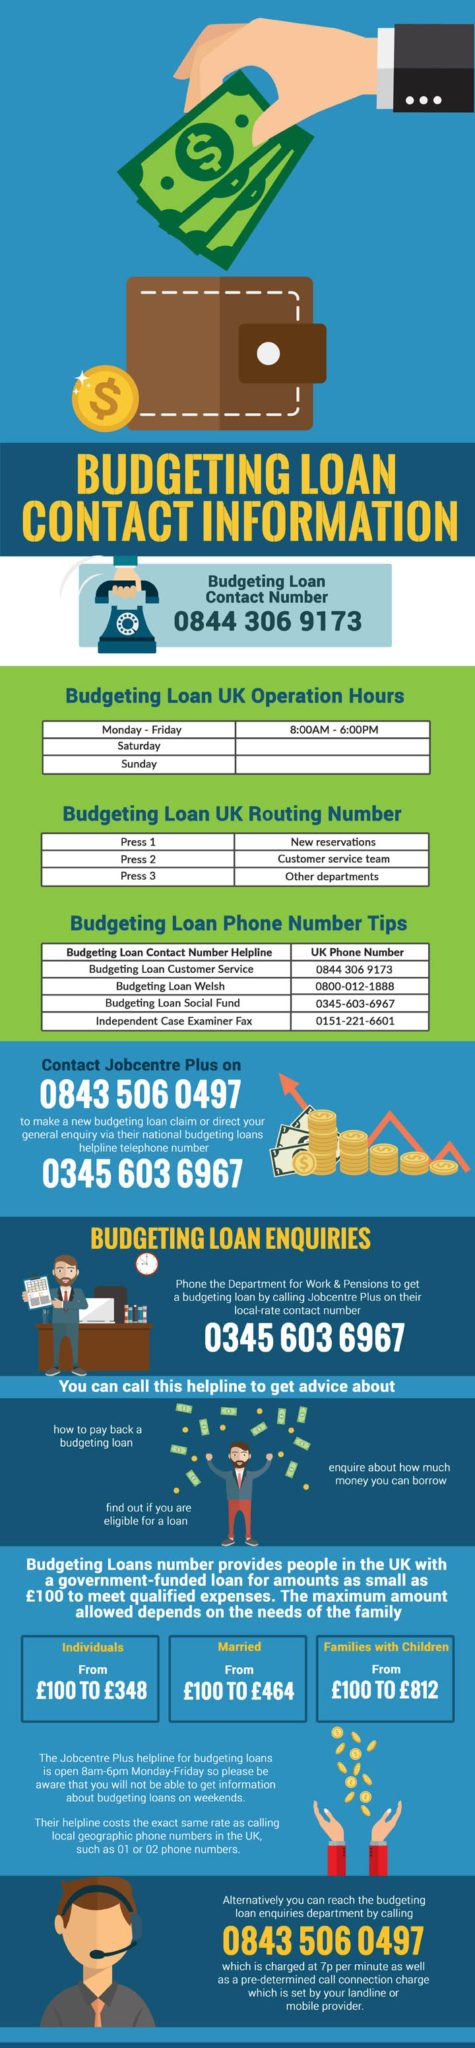 Budgeting loan numbers